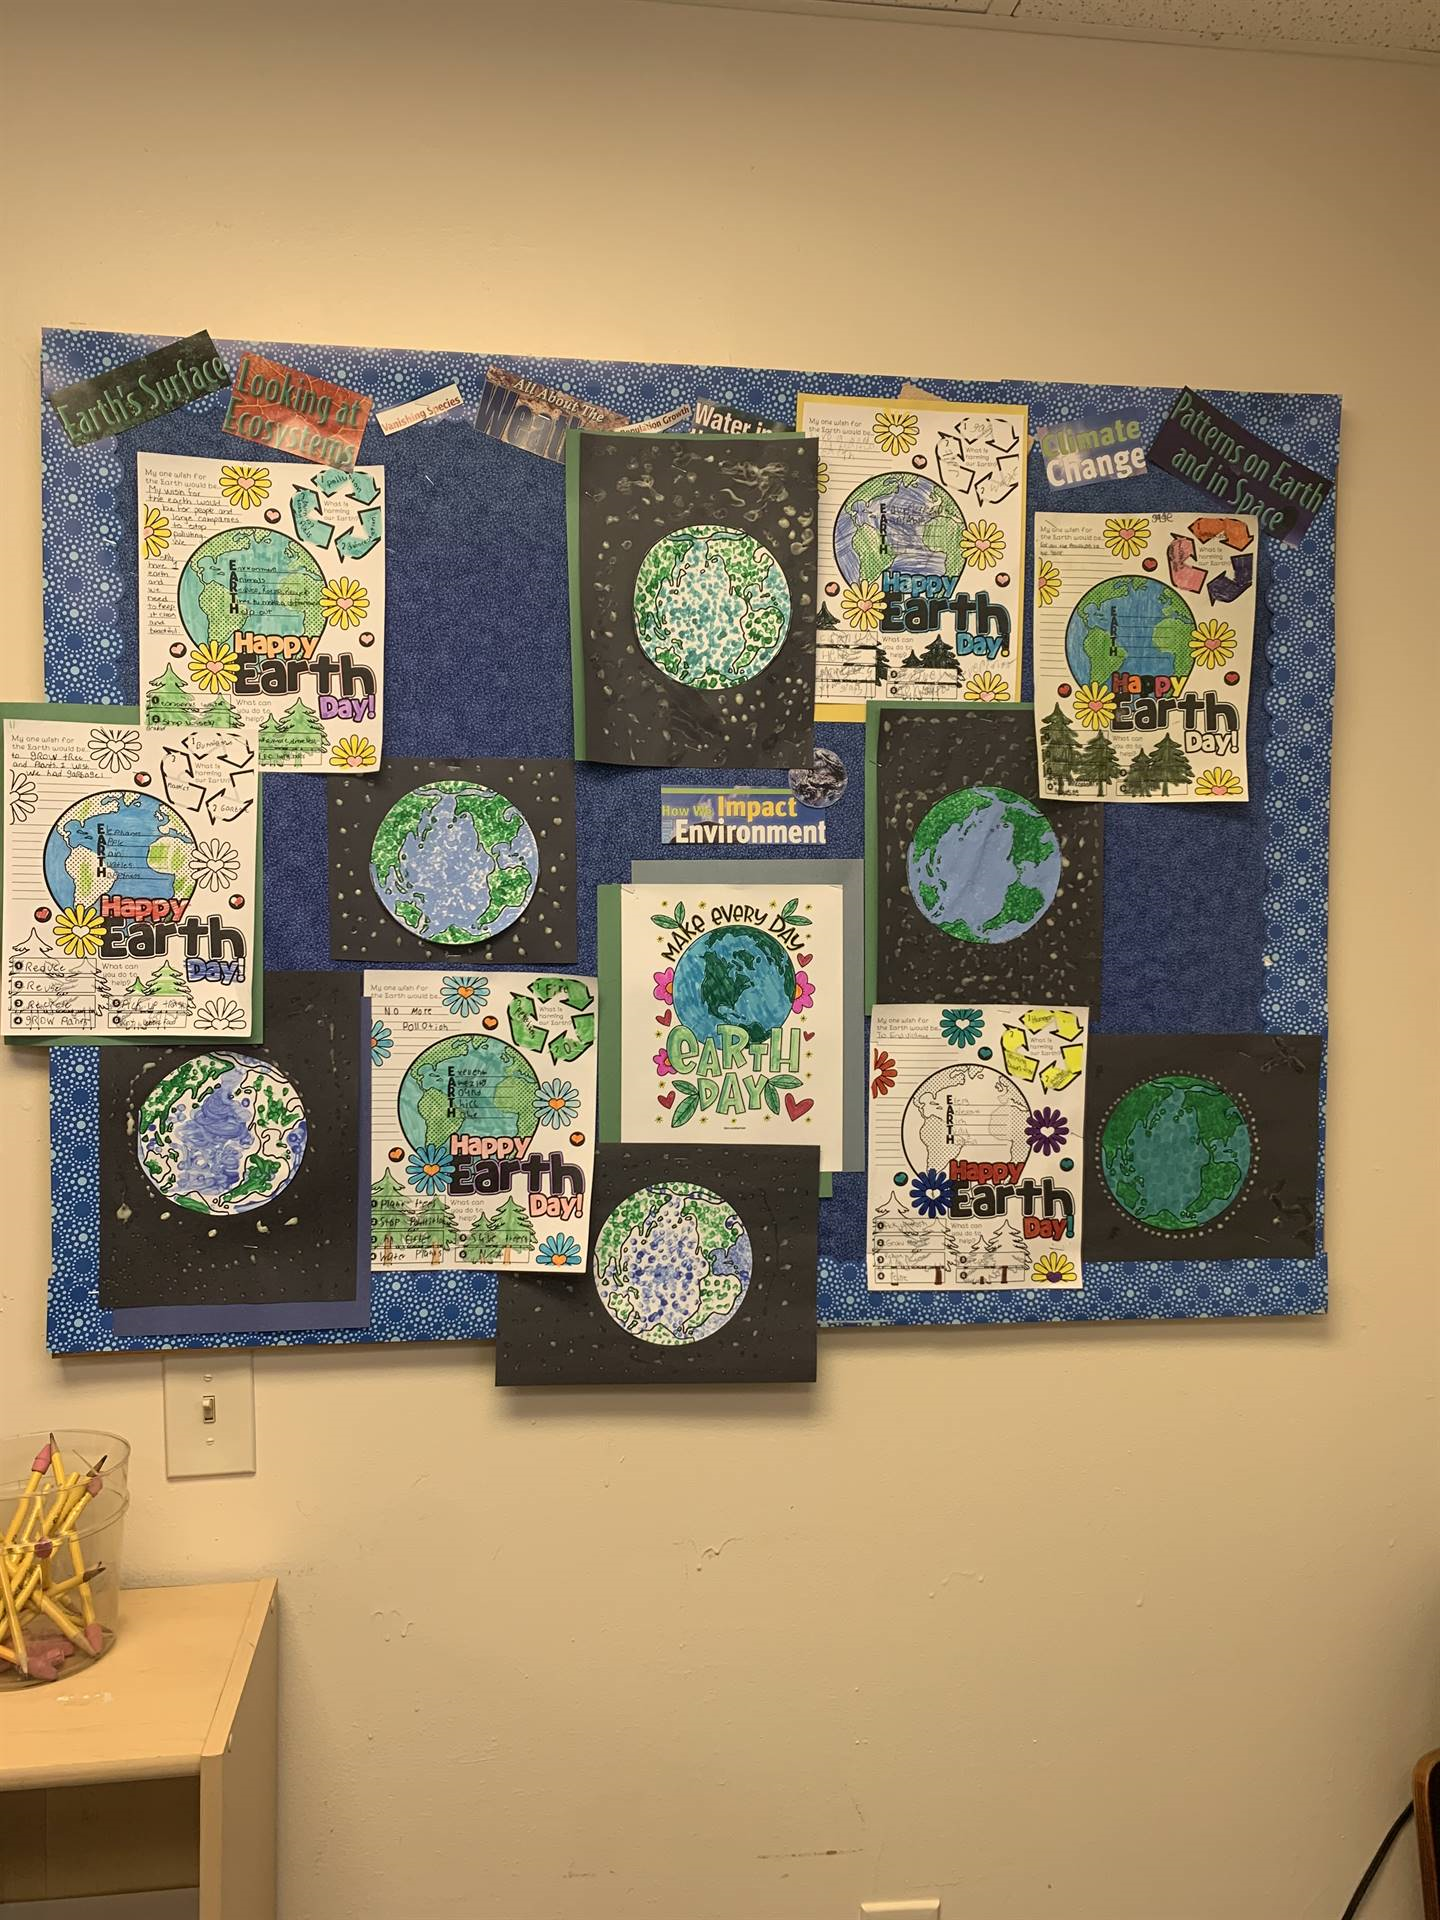 We celebrated Earth Day with demonstrations of Pointillism Art!